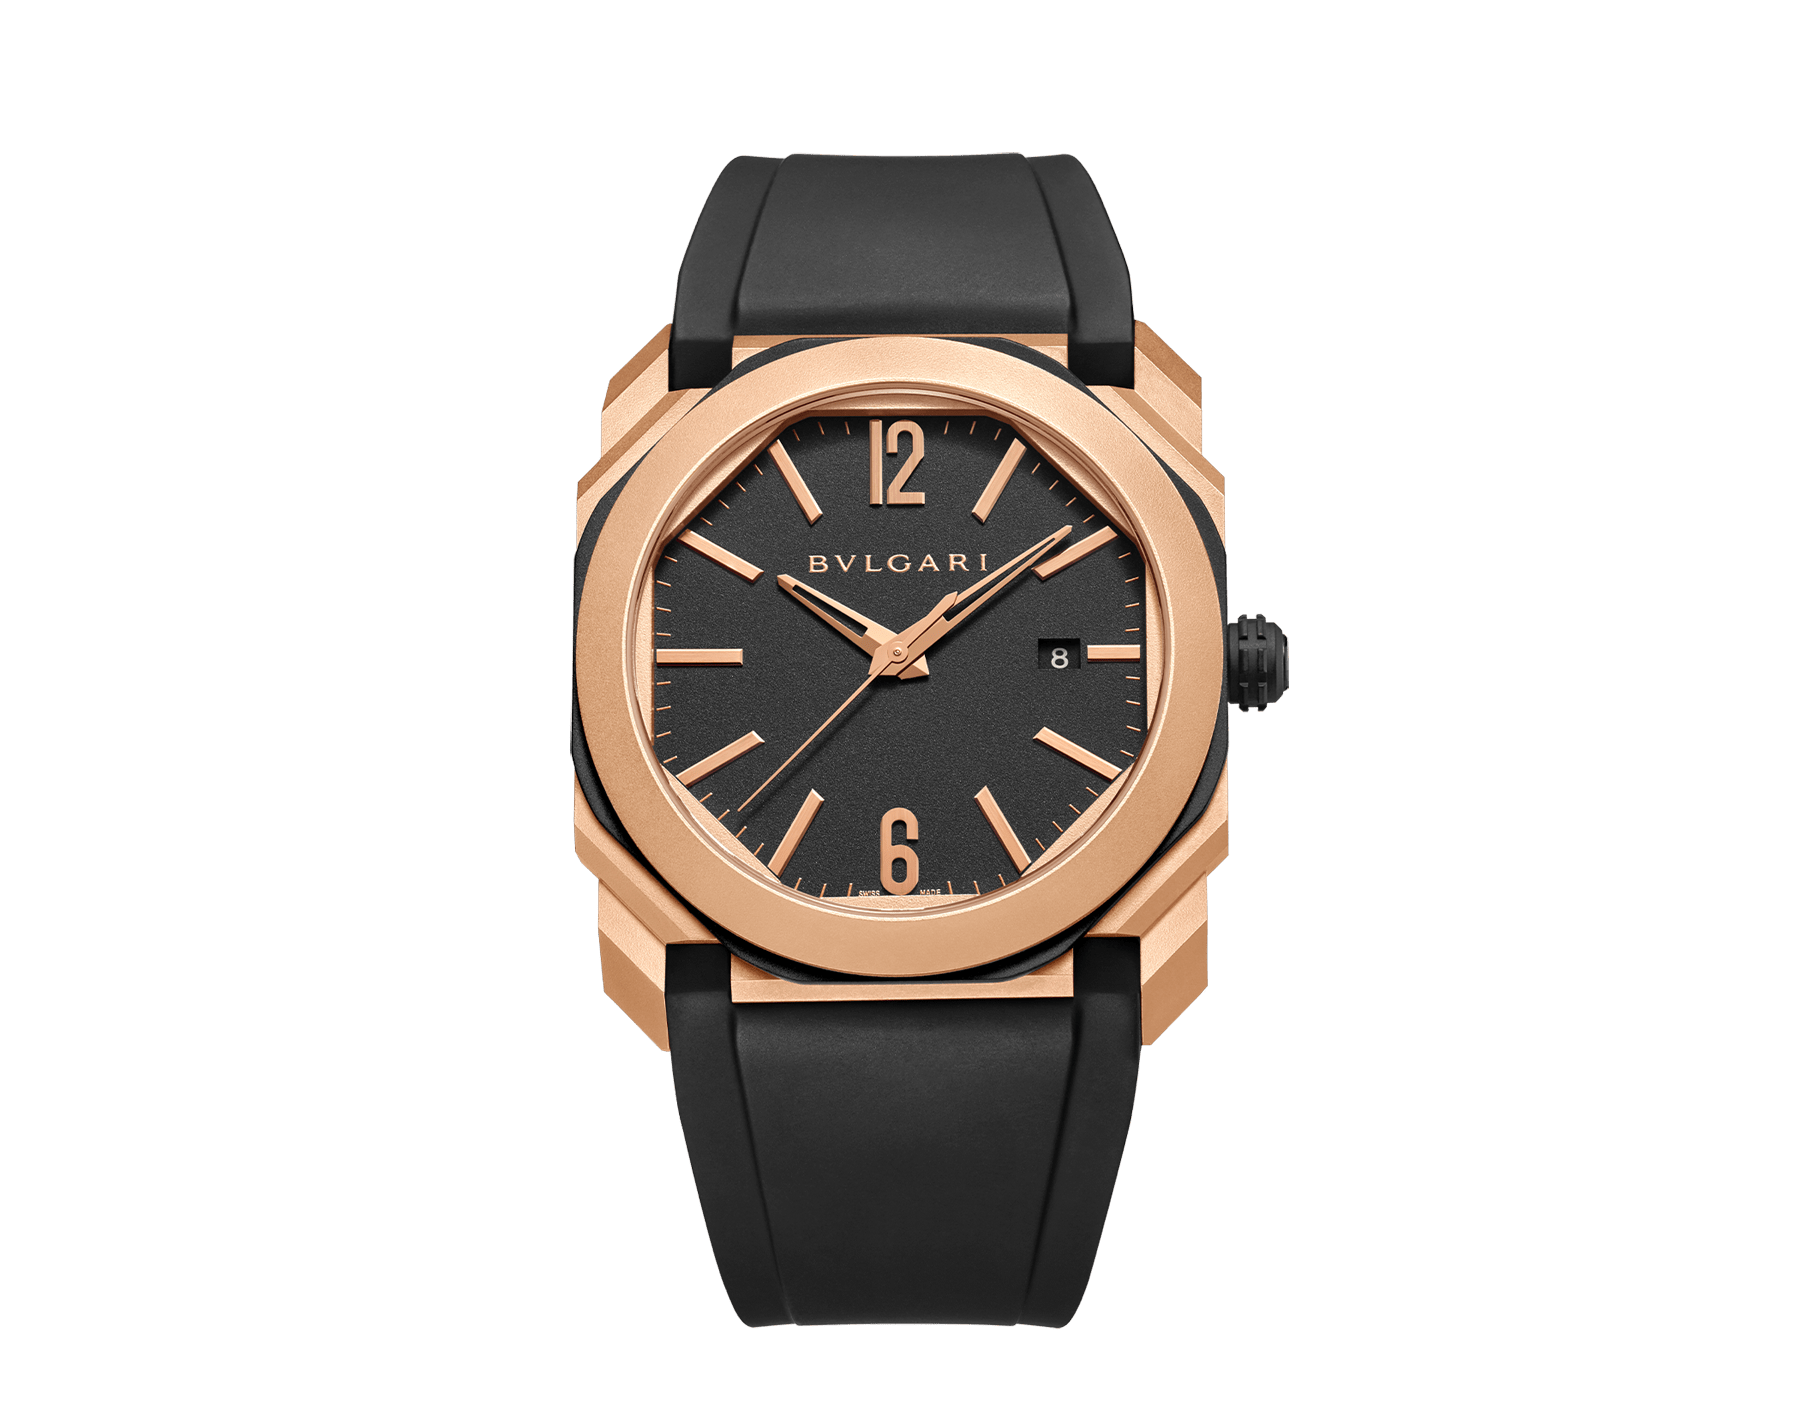 Octo L'Originale watch with mechanical manufacture movement, automatic winding and date, case in sandblasted steel with Diamond Like Carbon treatment and 18 kt rose gold, transparent case back, anthracite dial and black rubber bracelet. Water-resistant up to 100 metres 103203 image 1